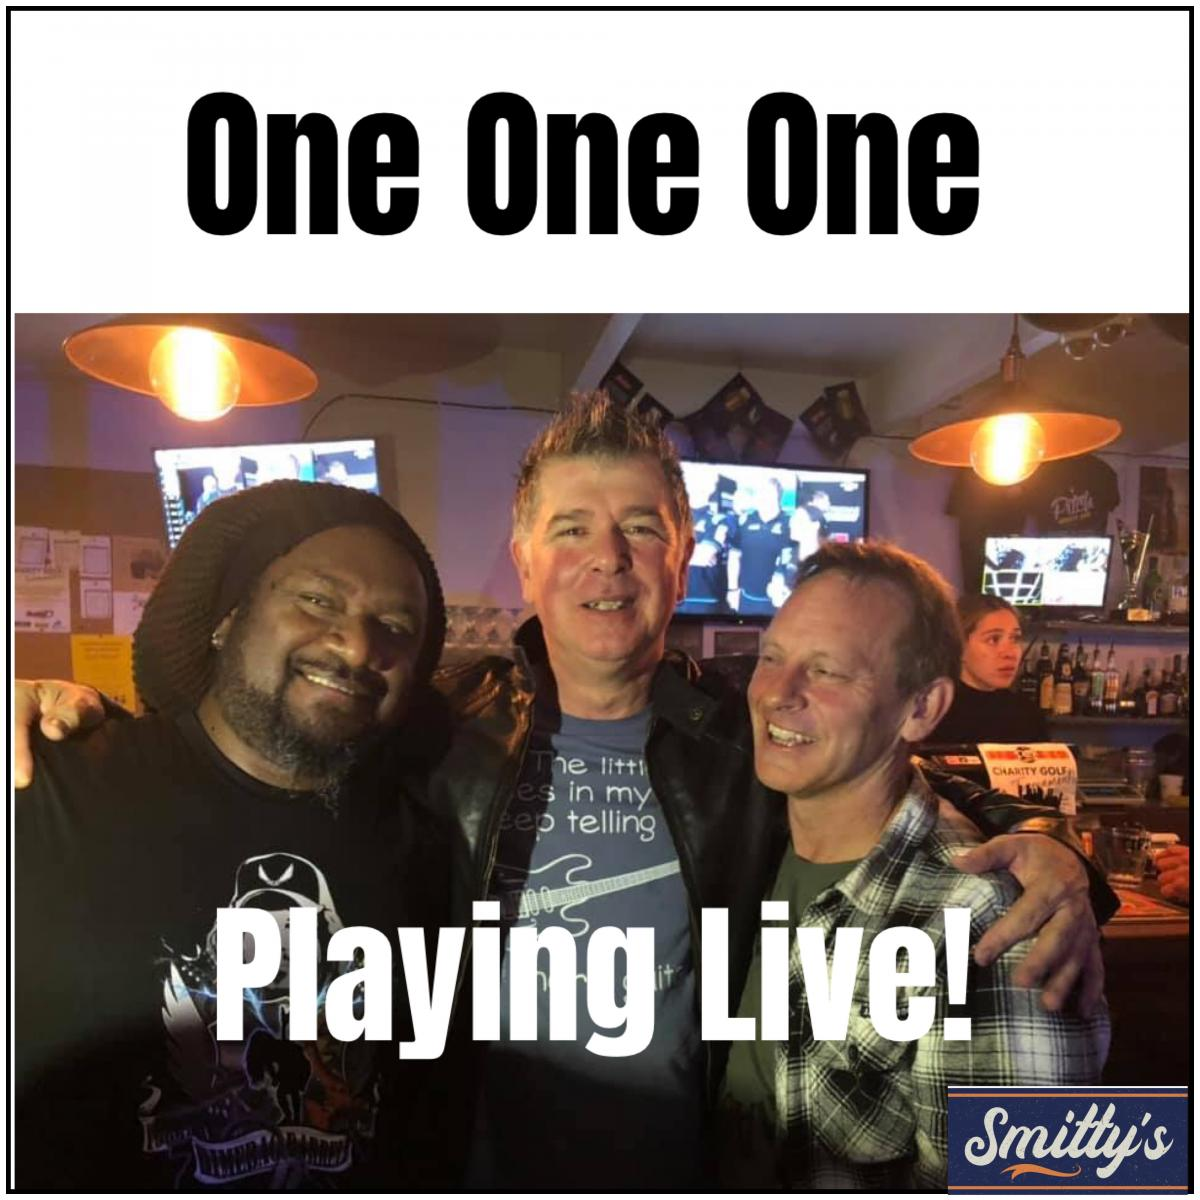 One One One (covers brand) Live at Smitty's Sports Bar & Grill